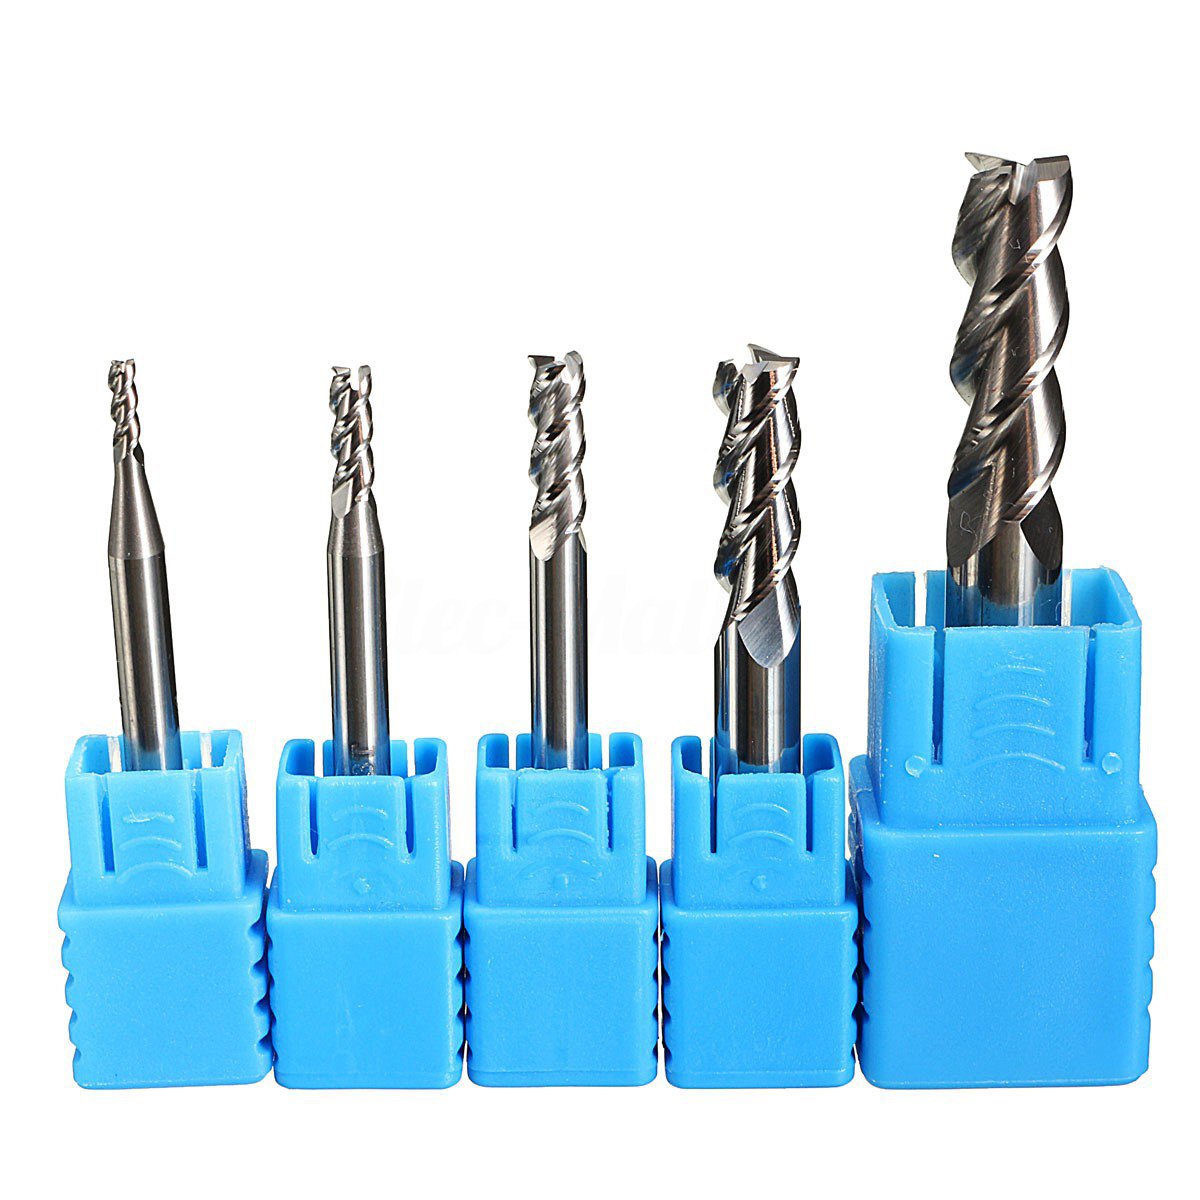 5pcs Tungsten Steel 3 Flute Milling Cutter HRC50 Solid Carbide End Mill 2/3/4/6/8mm For CNC Aluminum hrc55 r0 2 r0 5 r0 75 r1 0 r0 72 ball end carbide milling cutter tungsten solid steel alloy taper endmill free shipping